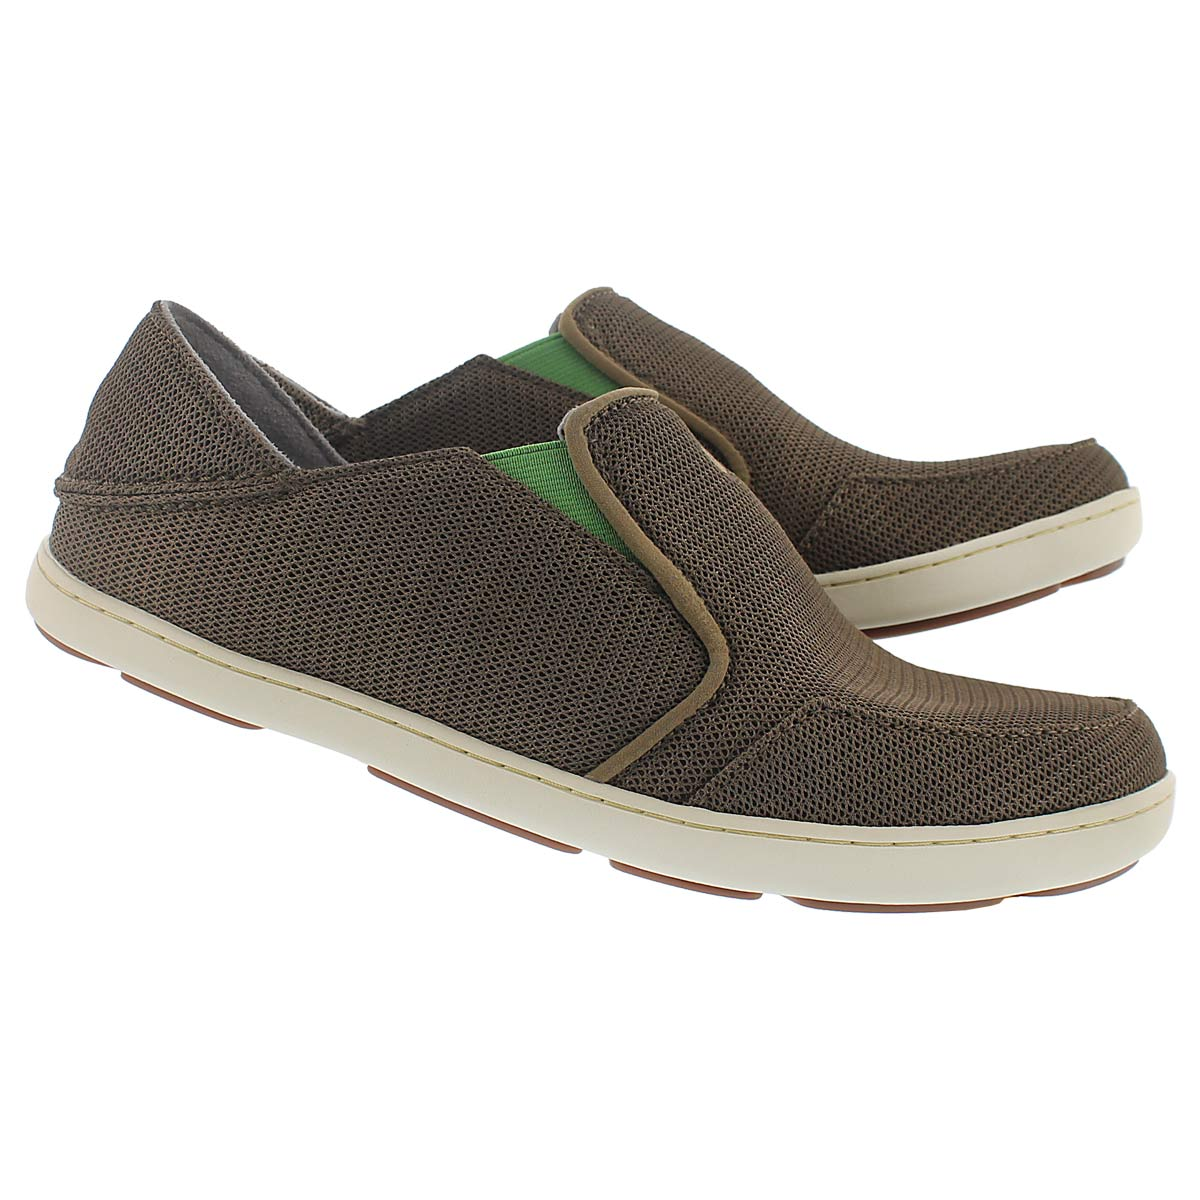 Mns NoheaMesh mustang slipon casual shoe